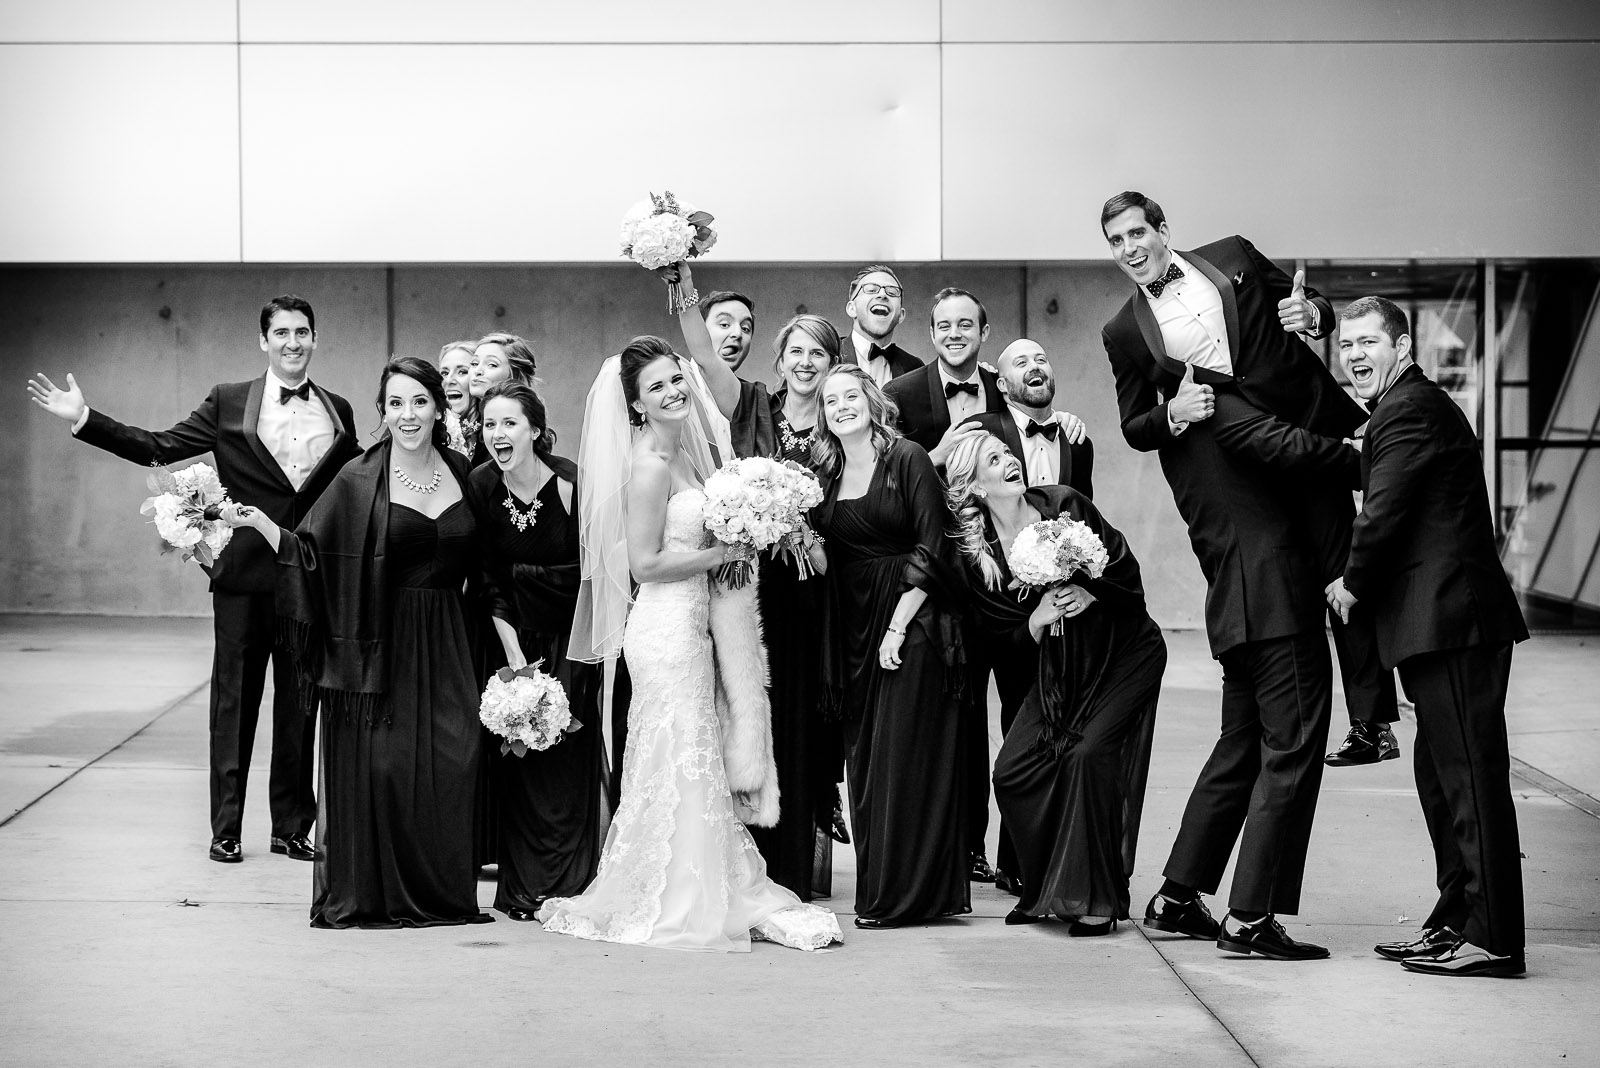 Eric_and_Christy_Photography_Blog_2016_Best_Wedding_Moments-41